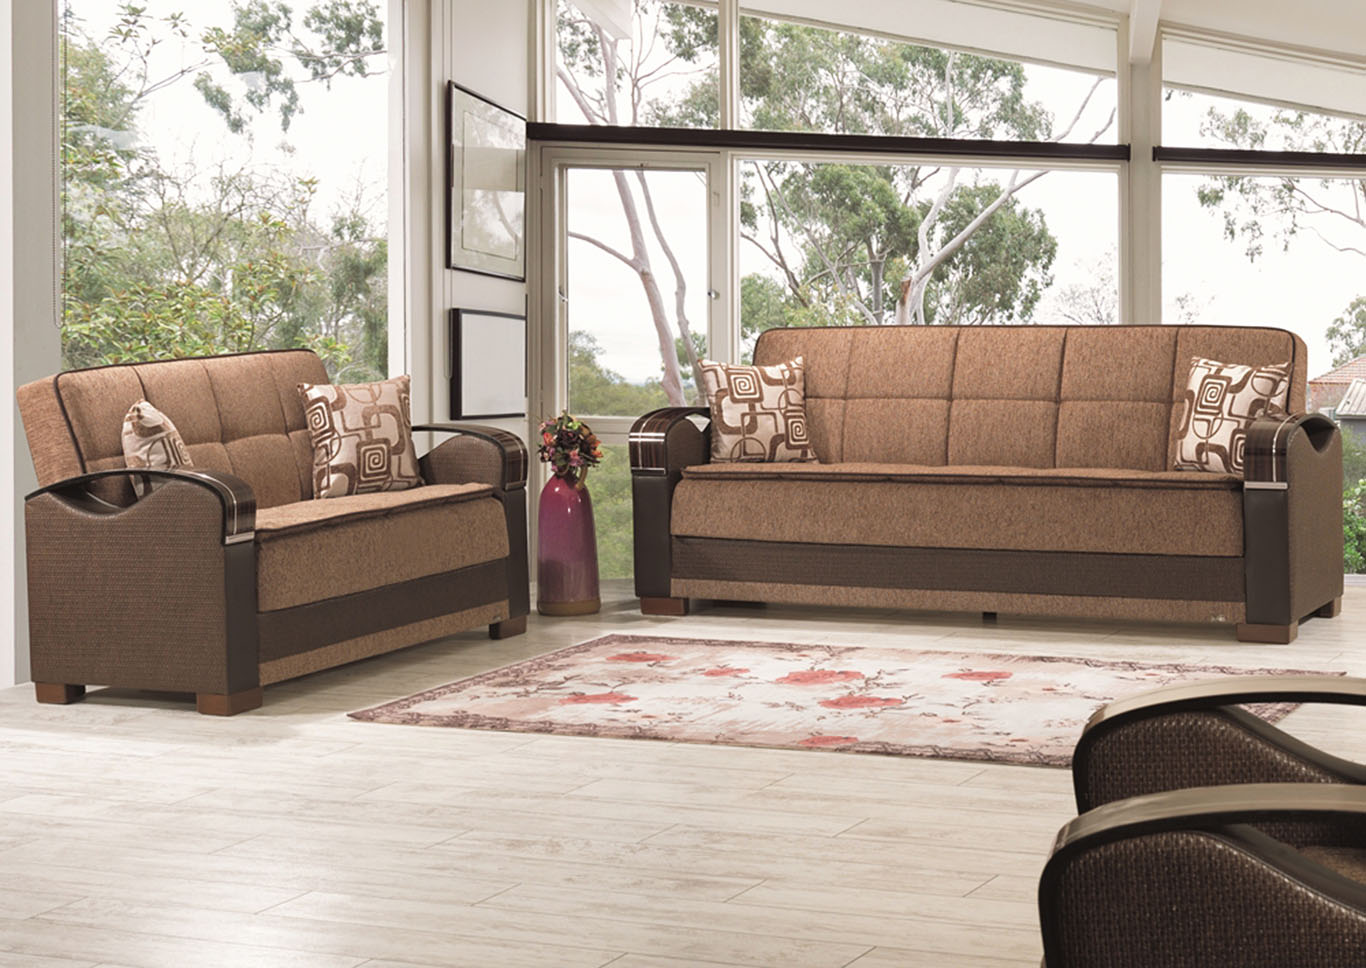 Bristol Brown Chenille Sofabed & Loveseat,CasaMode Functional Furniture